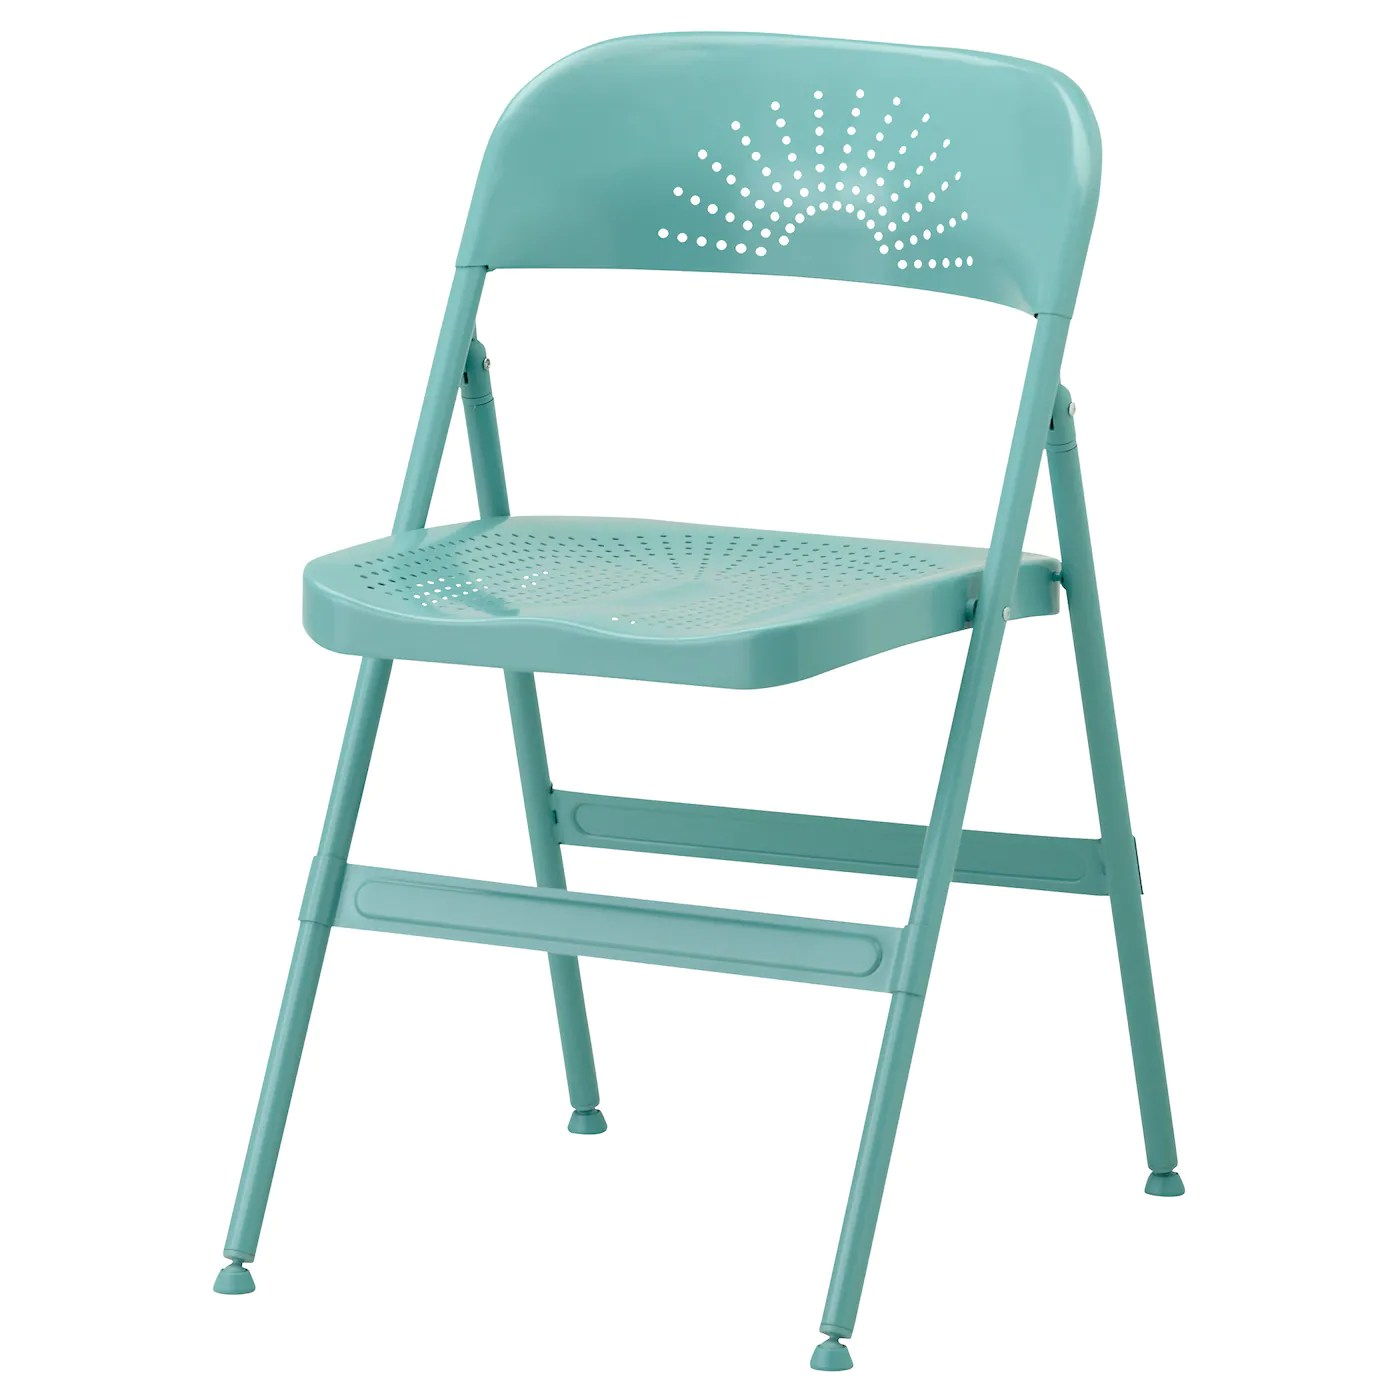 Foldable Chair Frode Folding Chair Turquoise Ikea